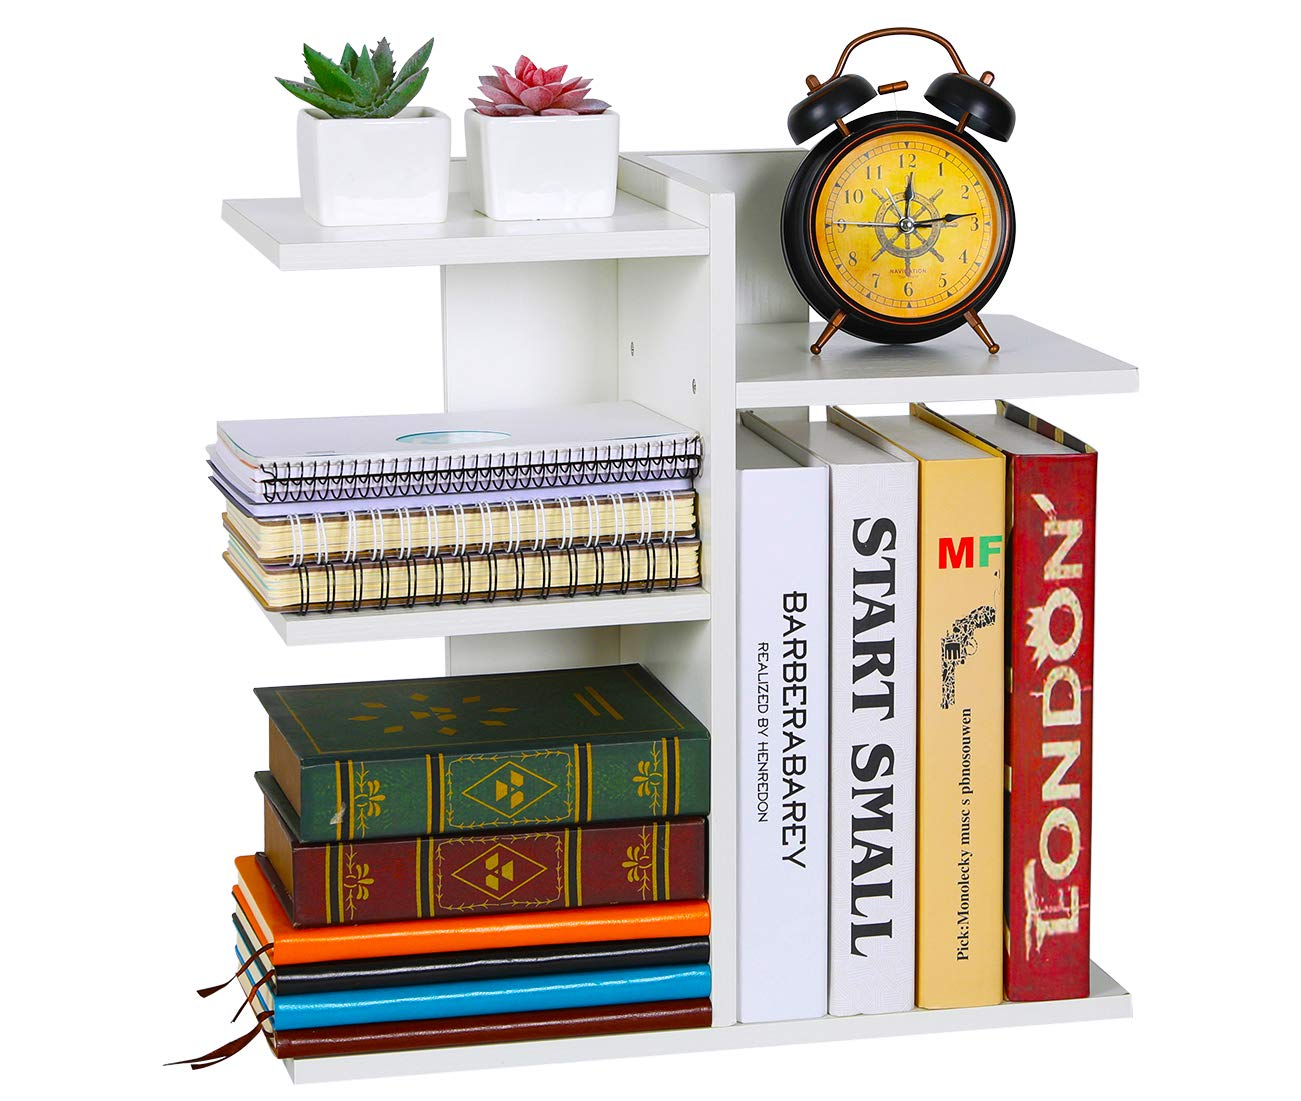 PAG Wood Desktop Bookshelf Assembled Countertop Bookcase Literature Holder Accessories Display Rack Office Supplies Desk Organizer, White by PAG (Image #9)